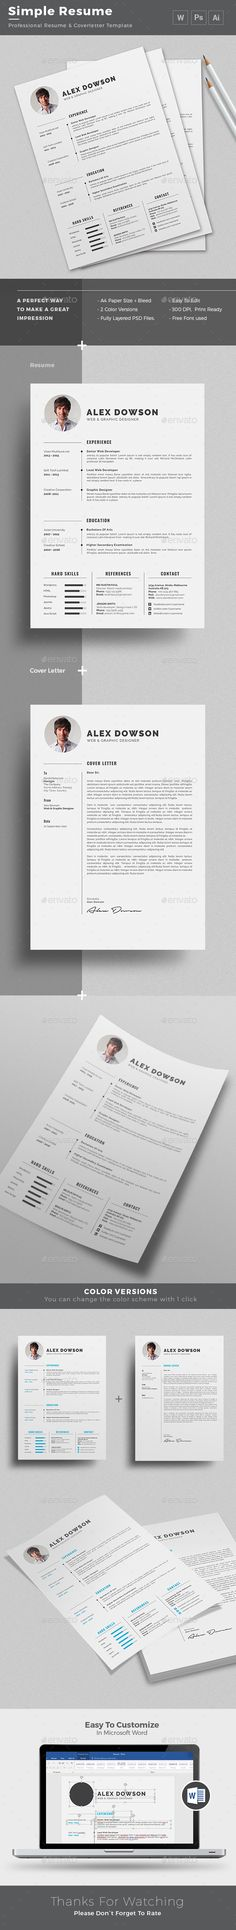 Battery - Creative Resume Template Creative, Creative resume and - free template for a resume